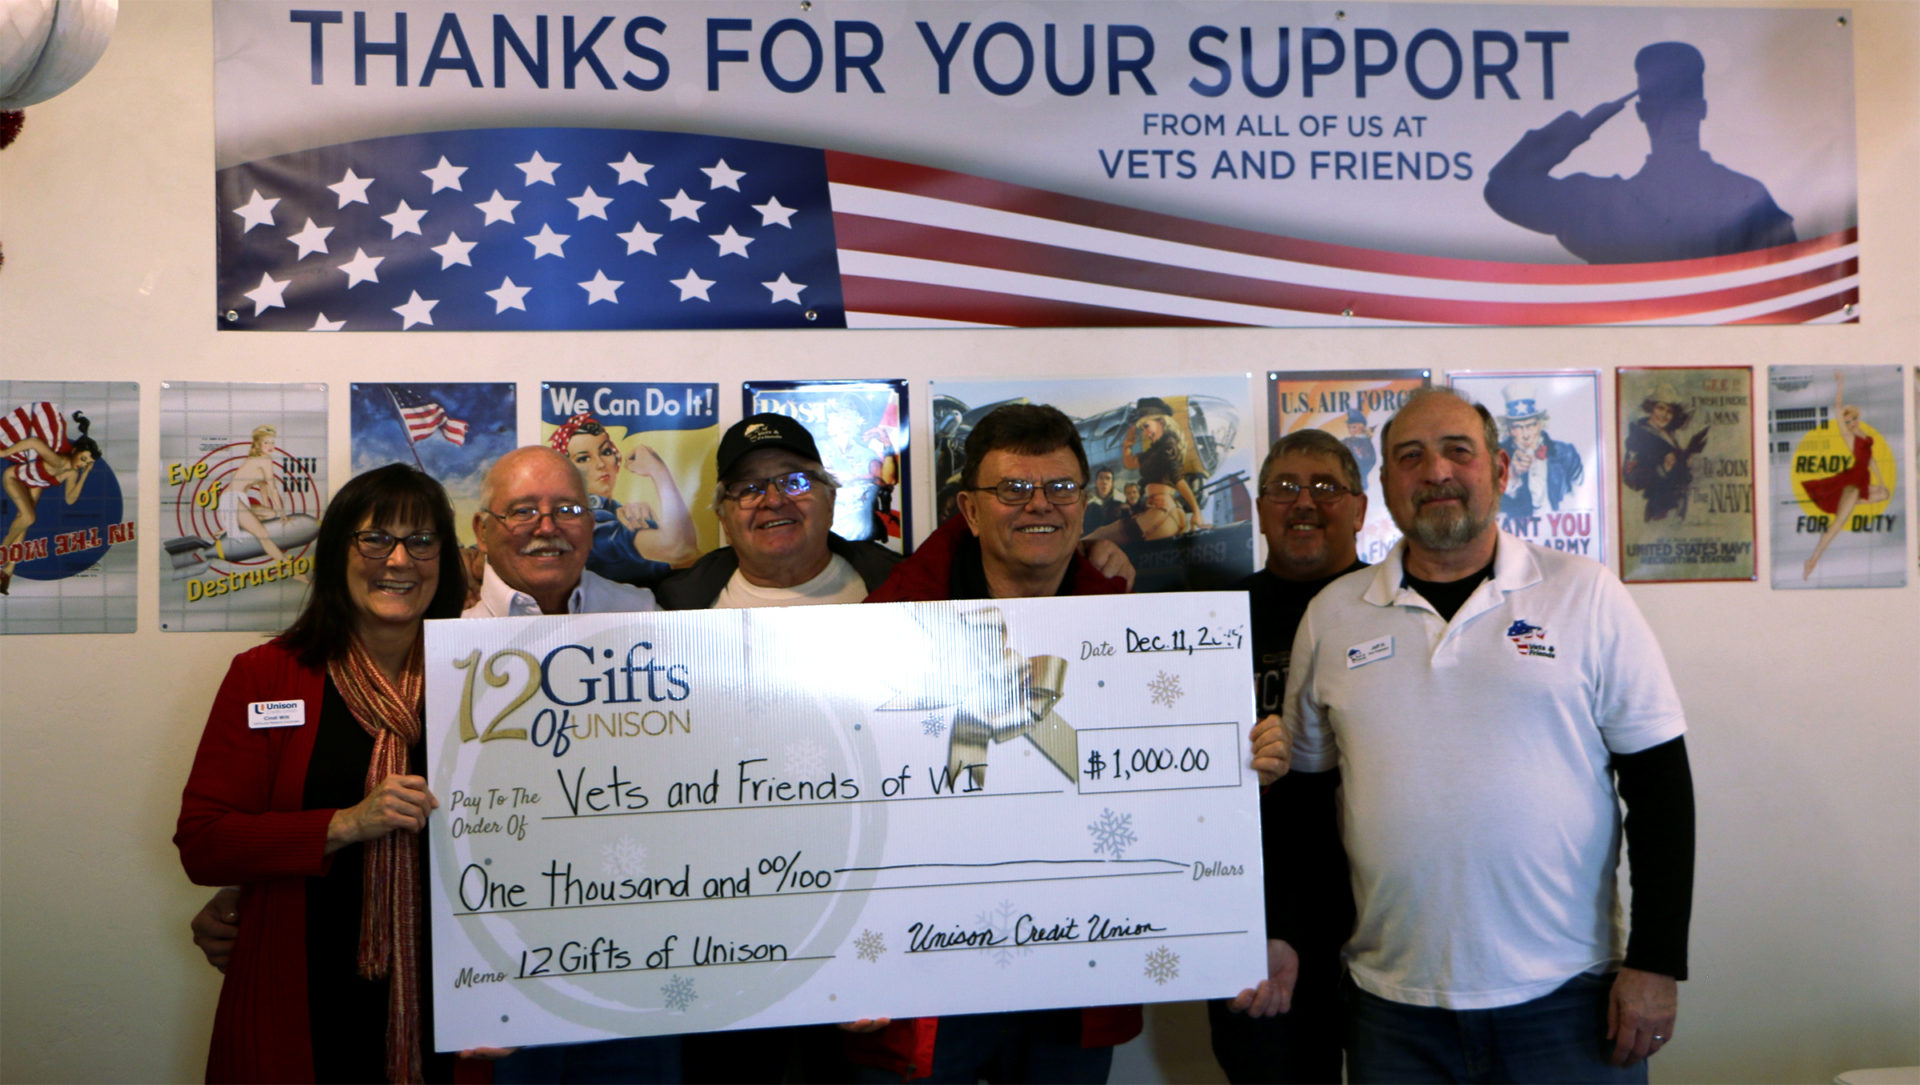 vets and friends of wisconsin donation from unison